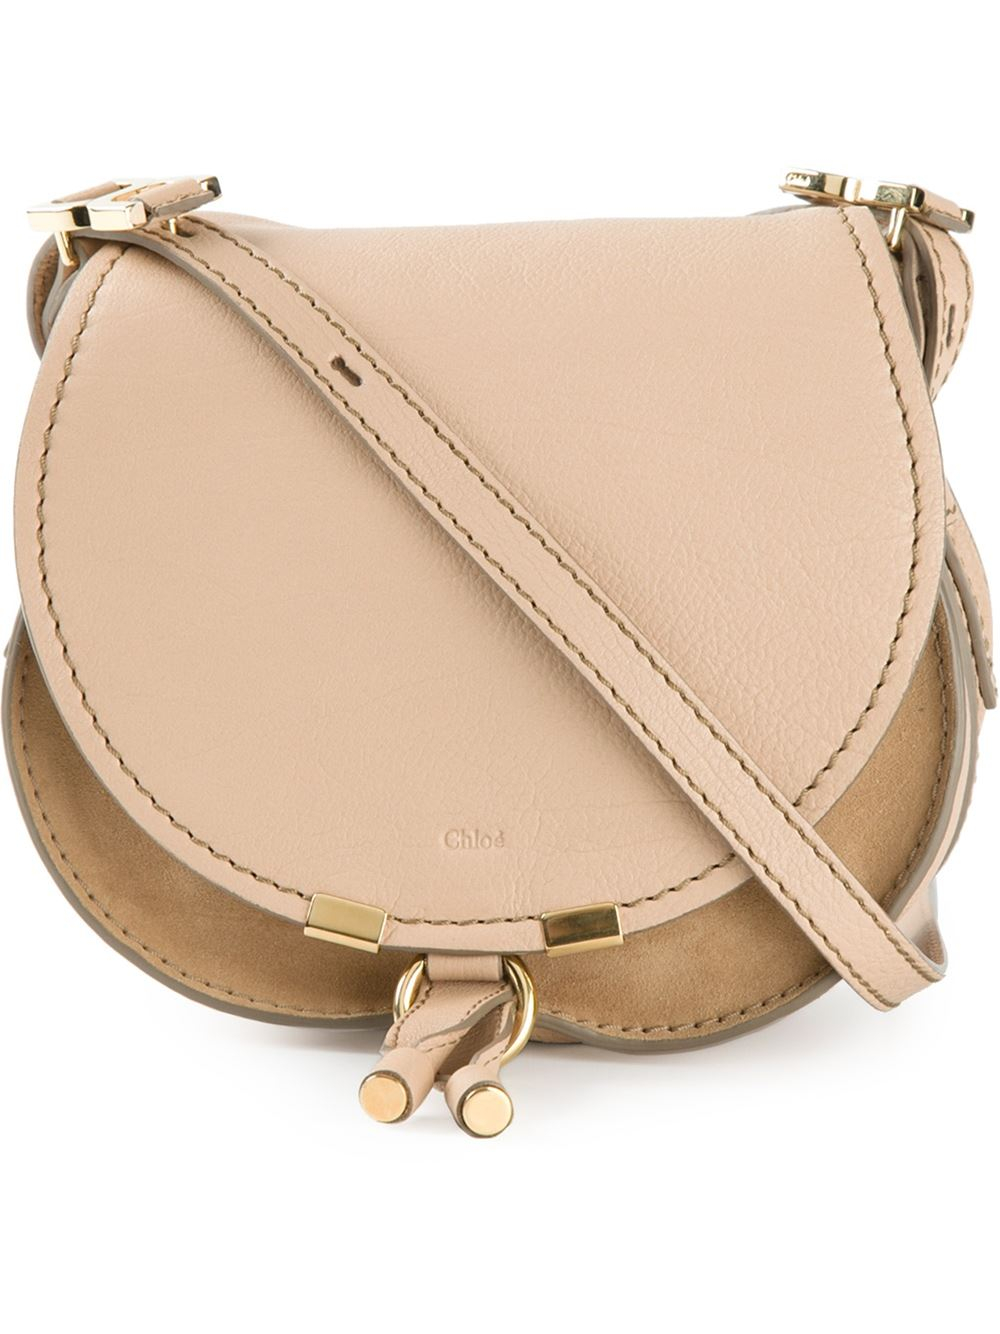 chloe leather crossbody bag